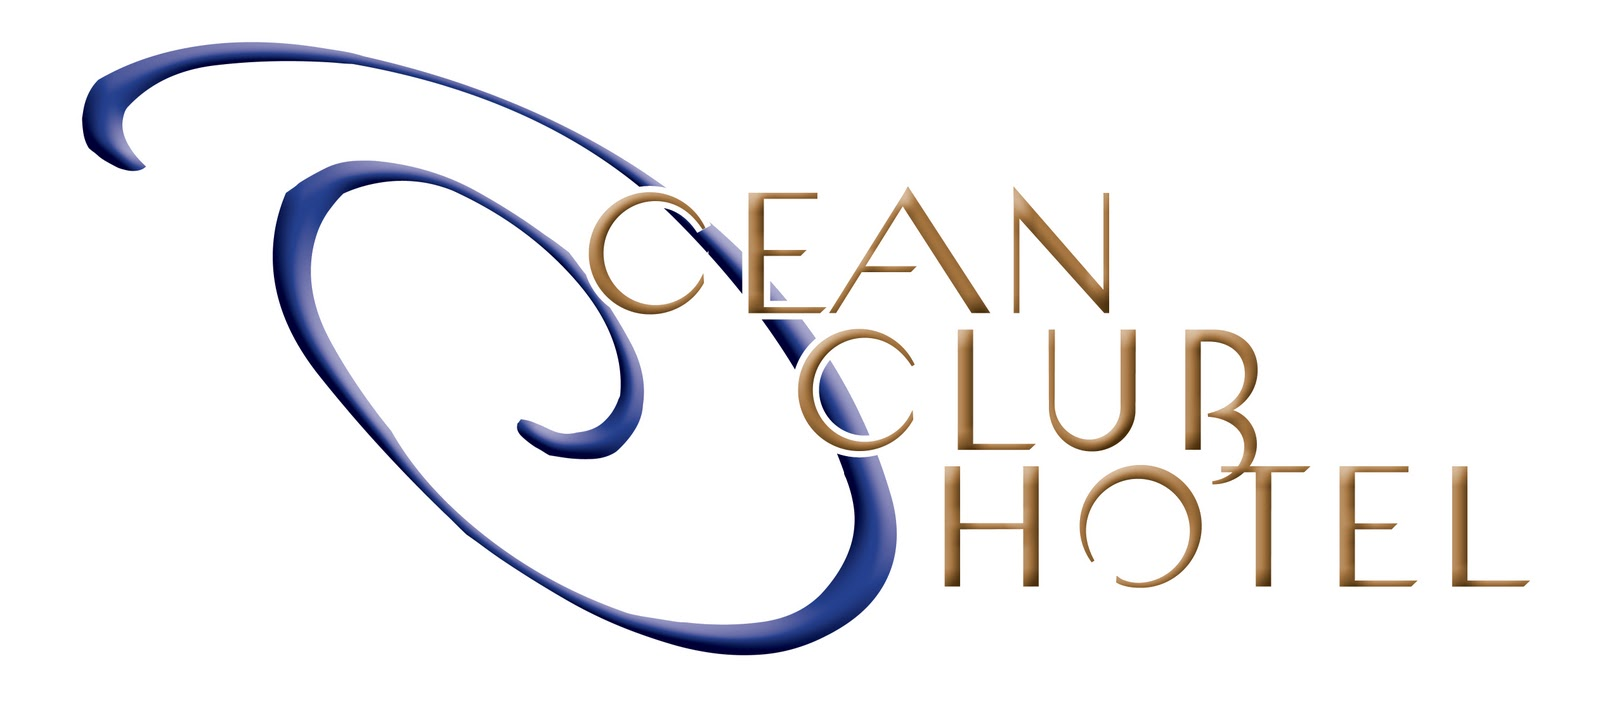 maustracks new logo design ocean club hotel cape may